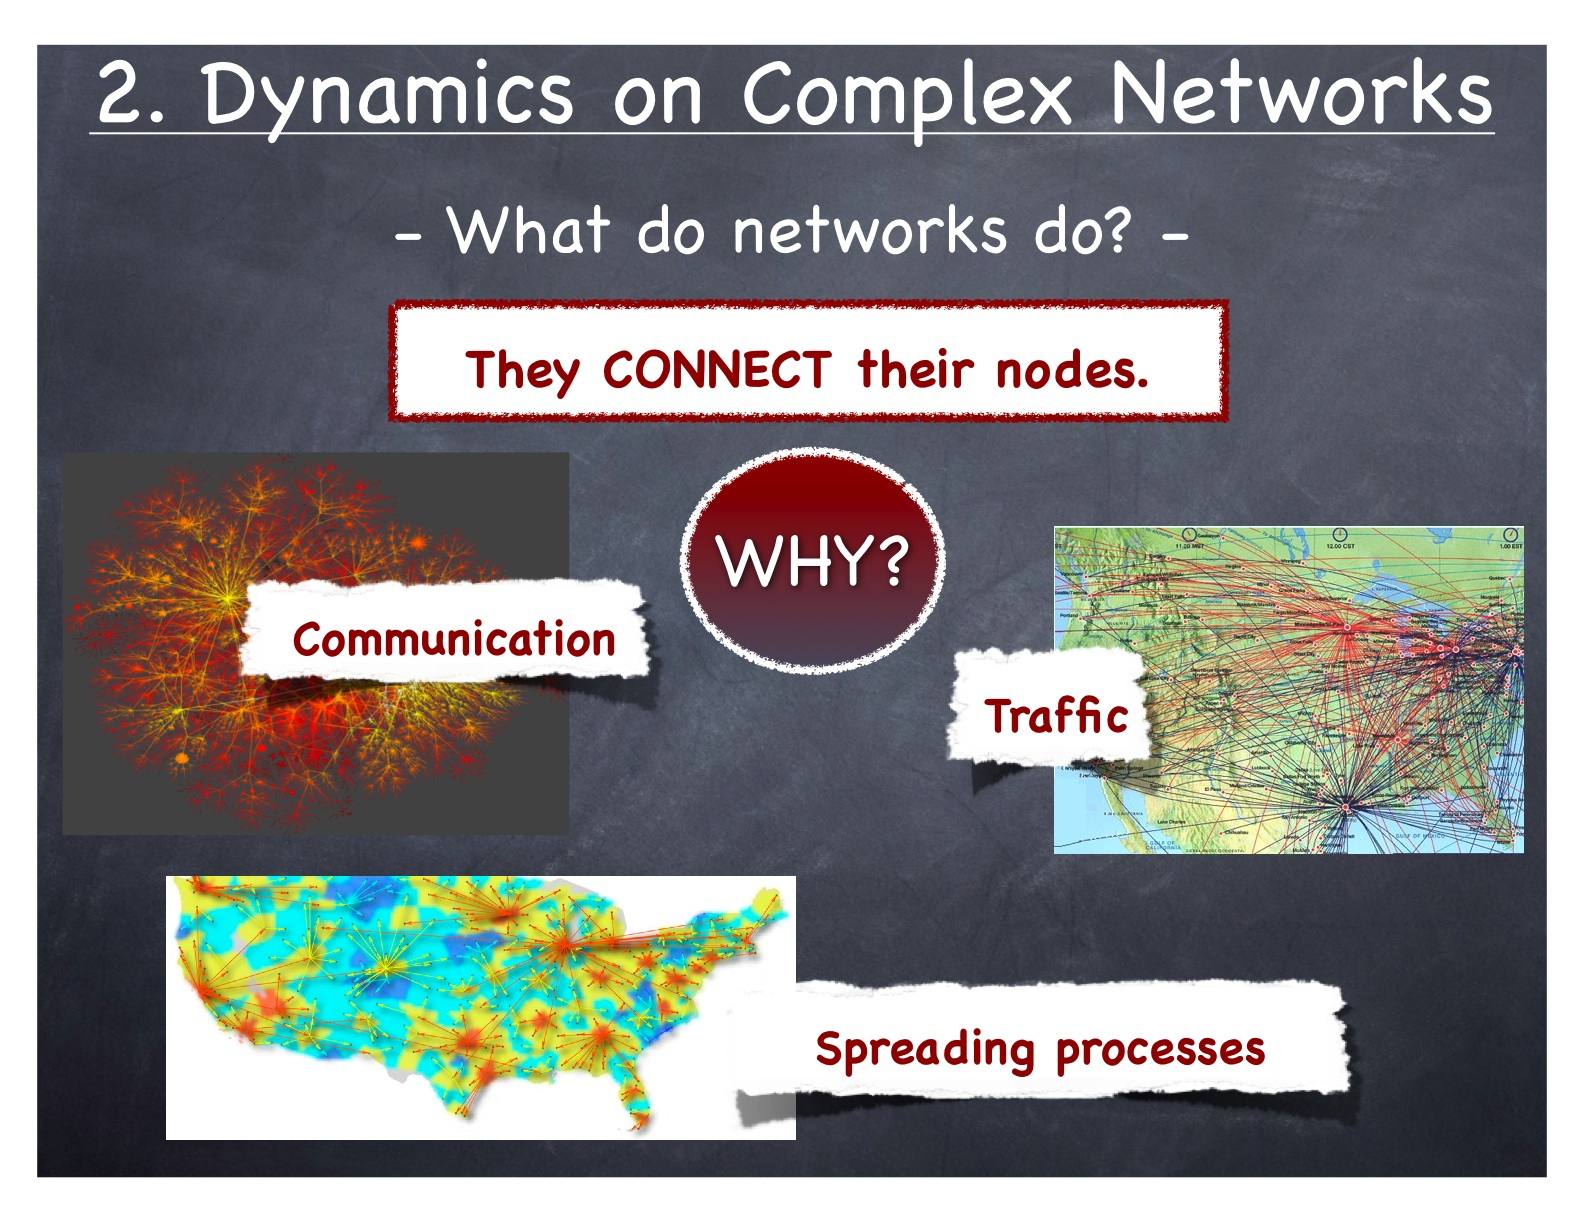 dynamical processes on complex networks pdf